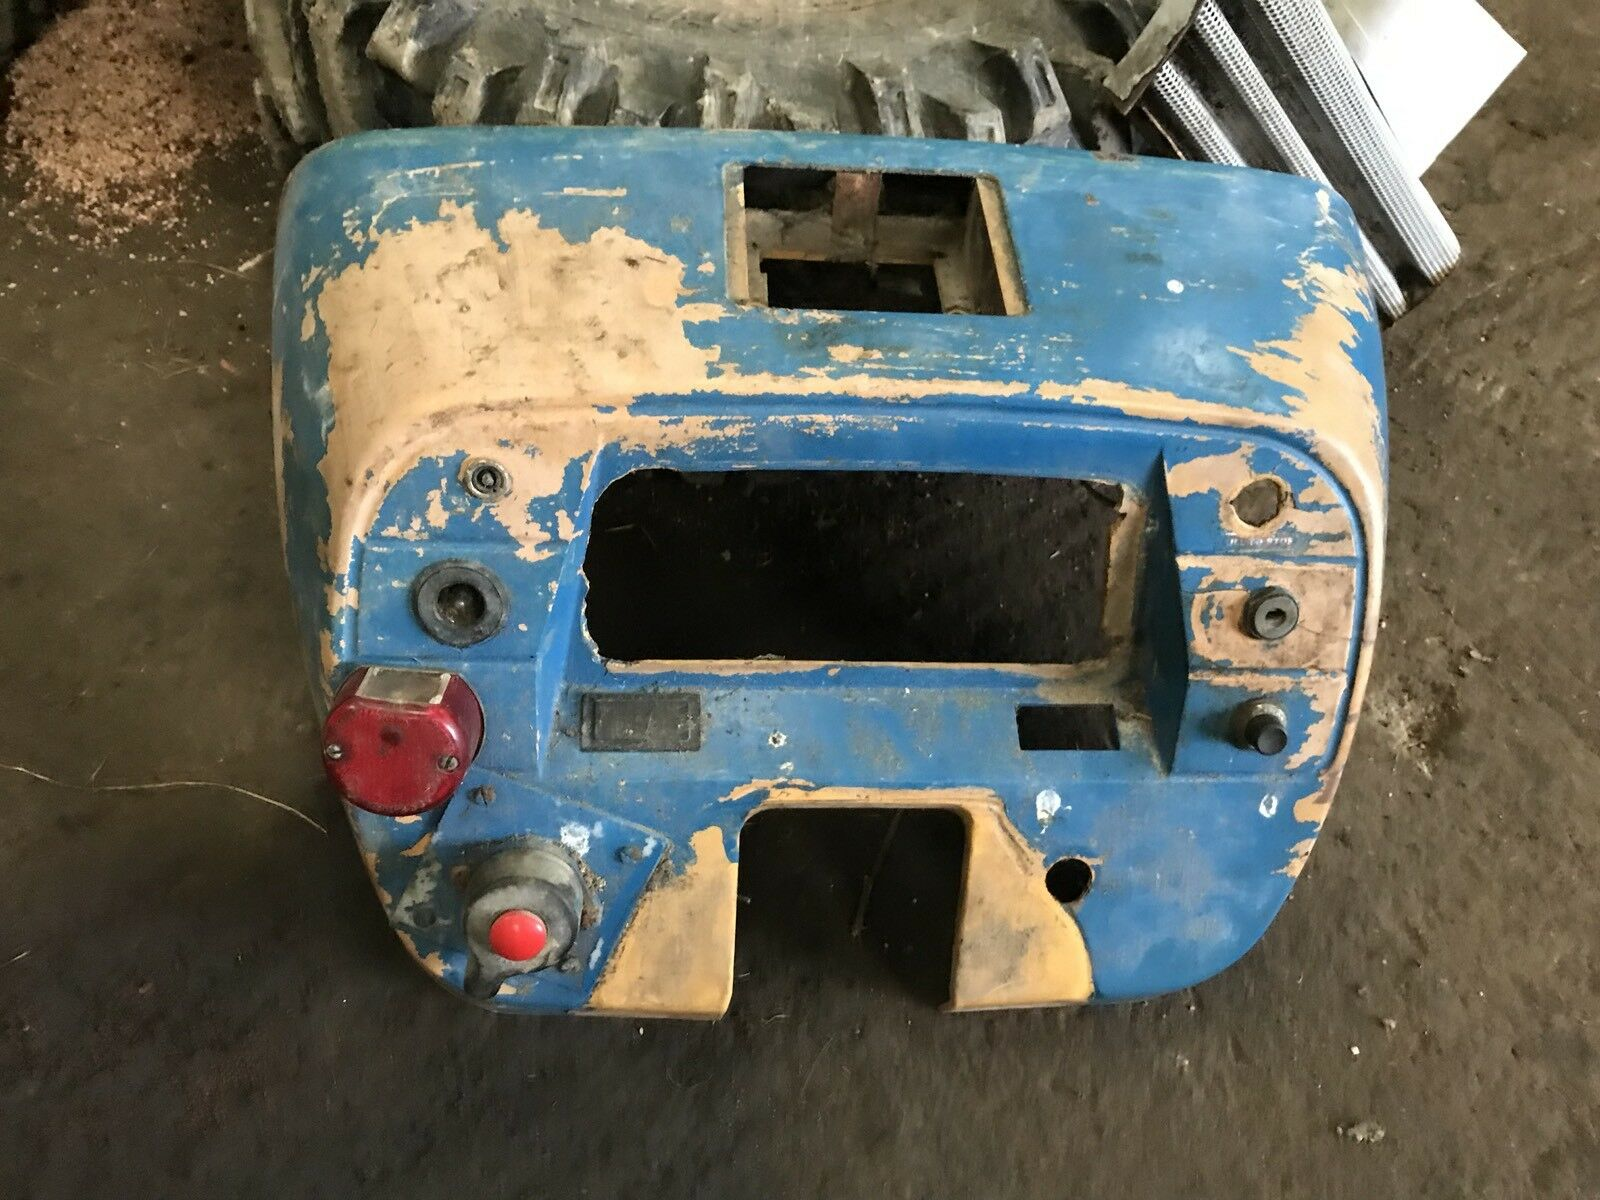 Ford 4610 Fuse Box Just Another Wiring Data 6610 Ap Cab Dash Panel 3910 25 00 Picclick Uk Switch